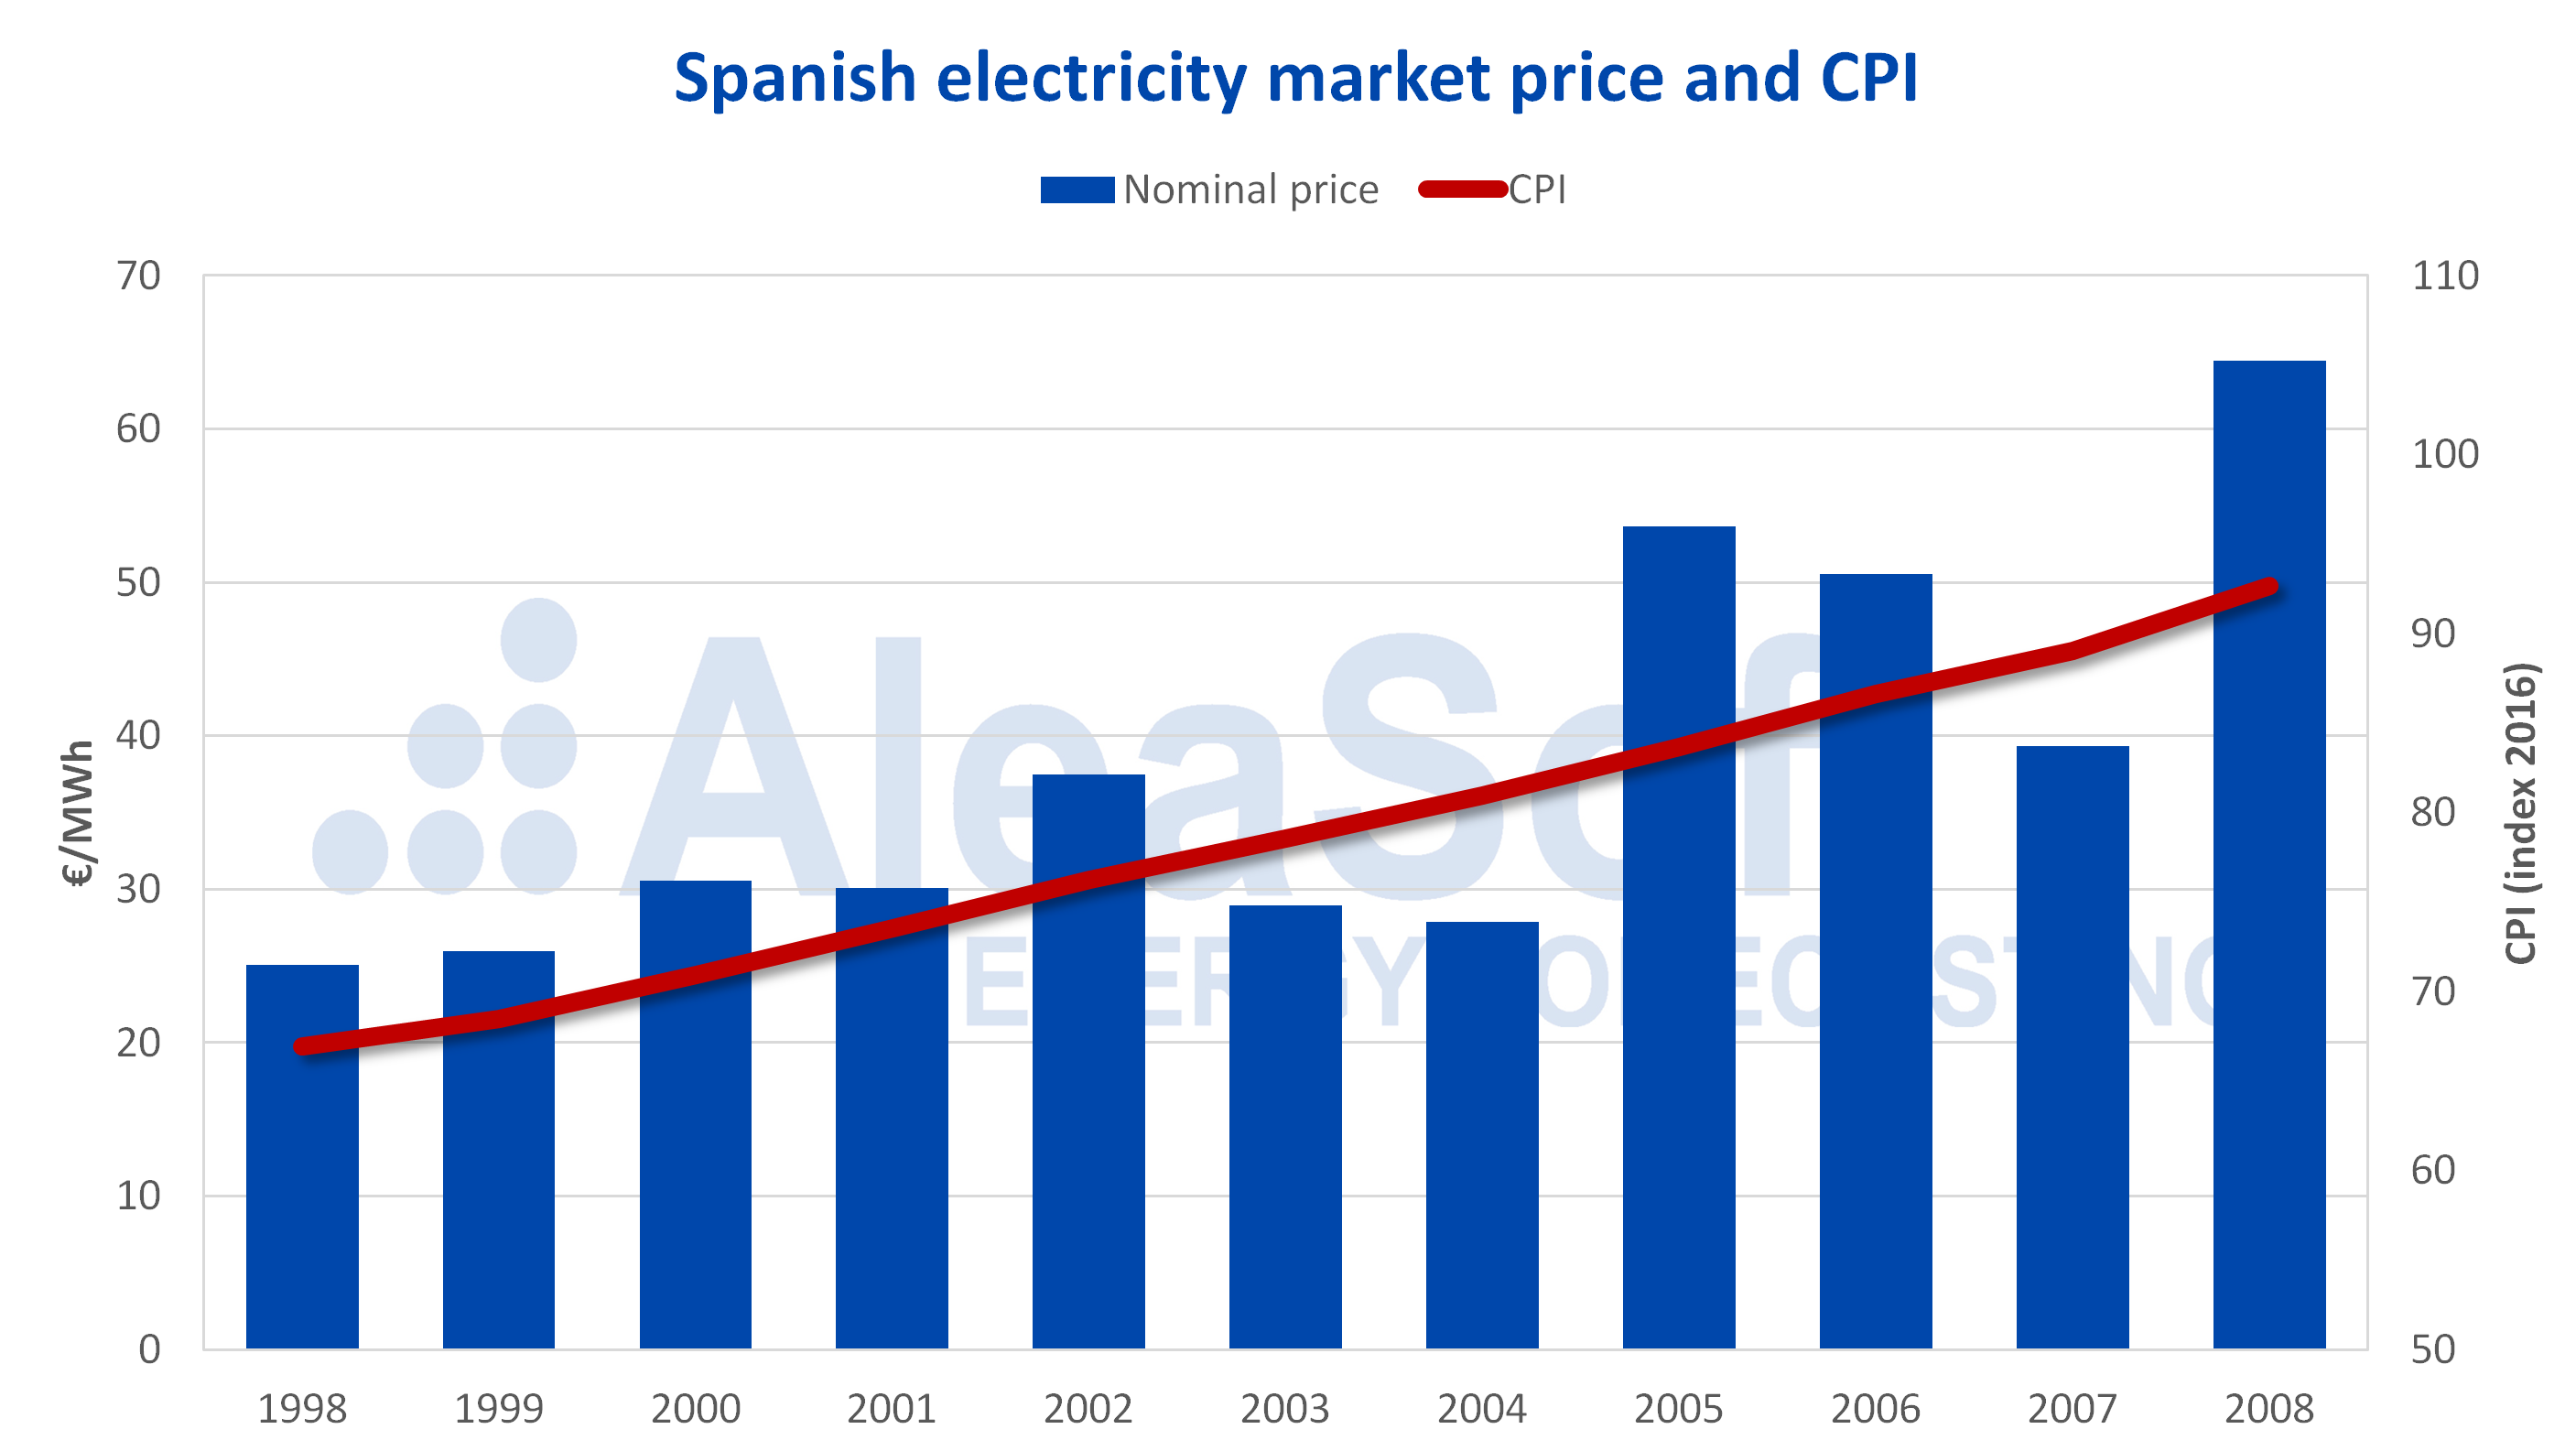 AleaSoft - Electricity market price and CPI